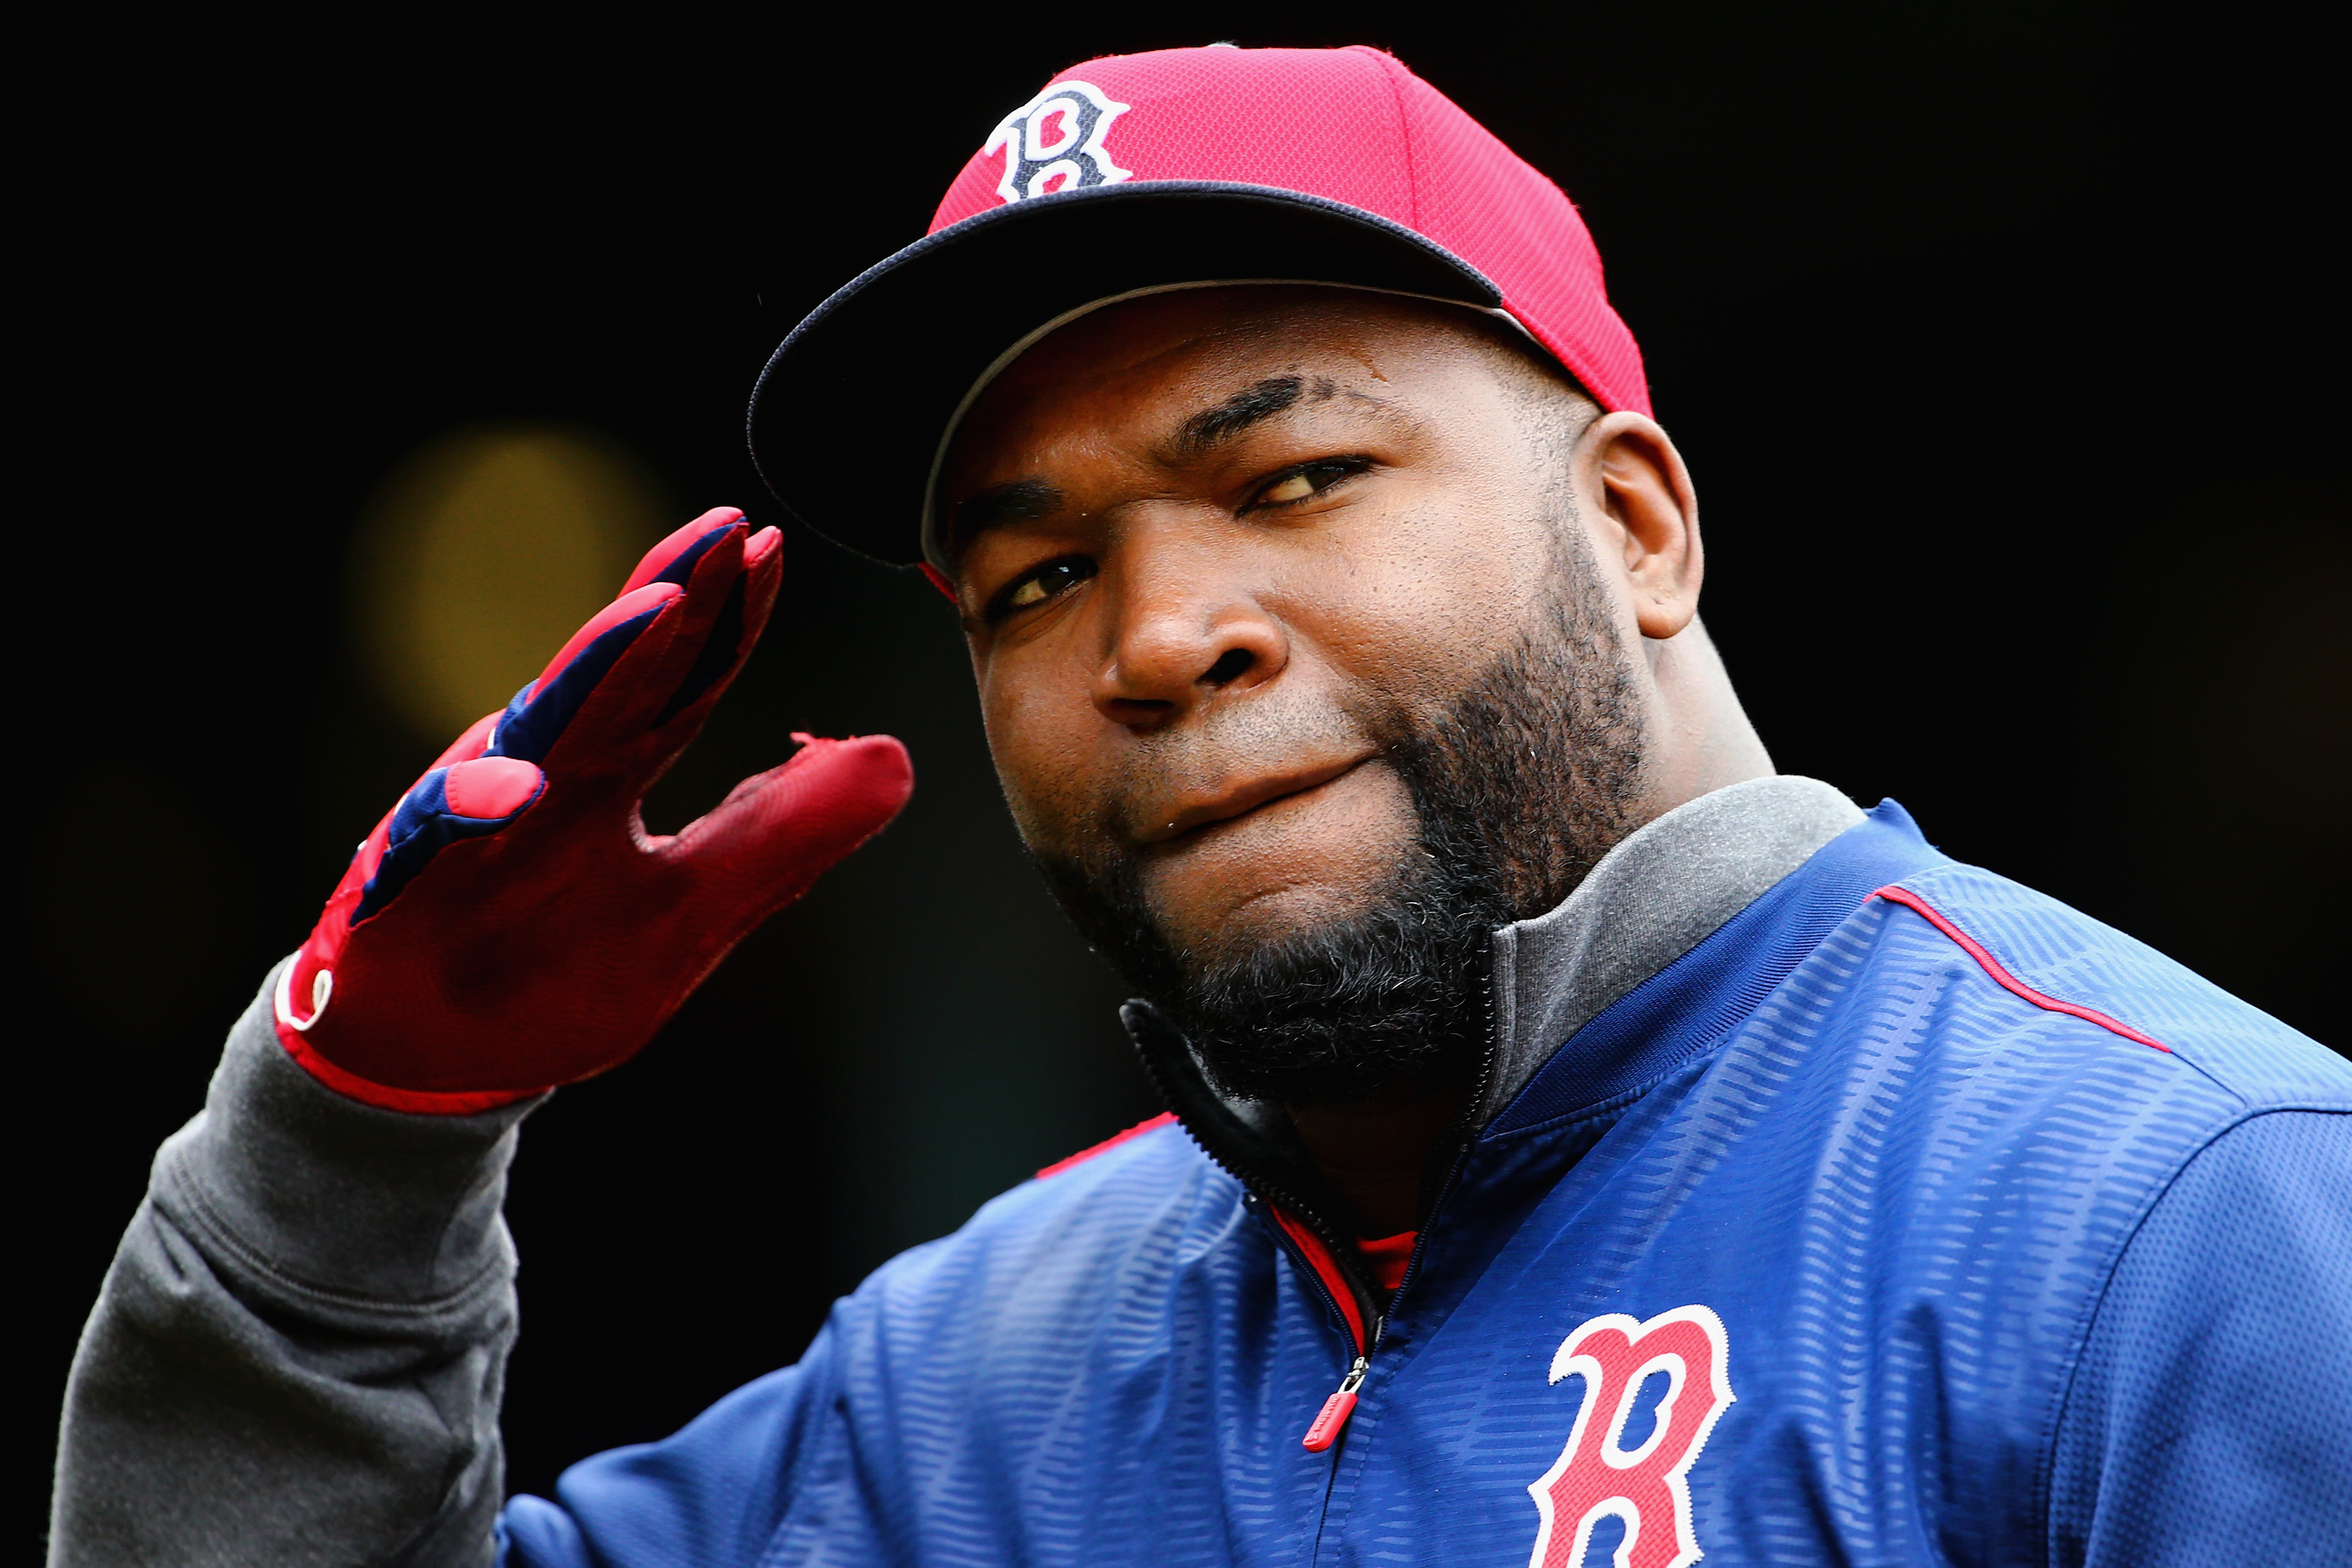 David Ortiz, baleado, República Dominicana, Red Sox